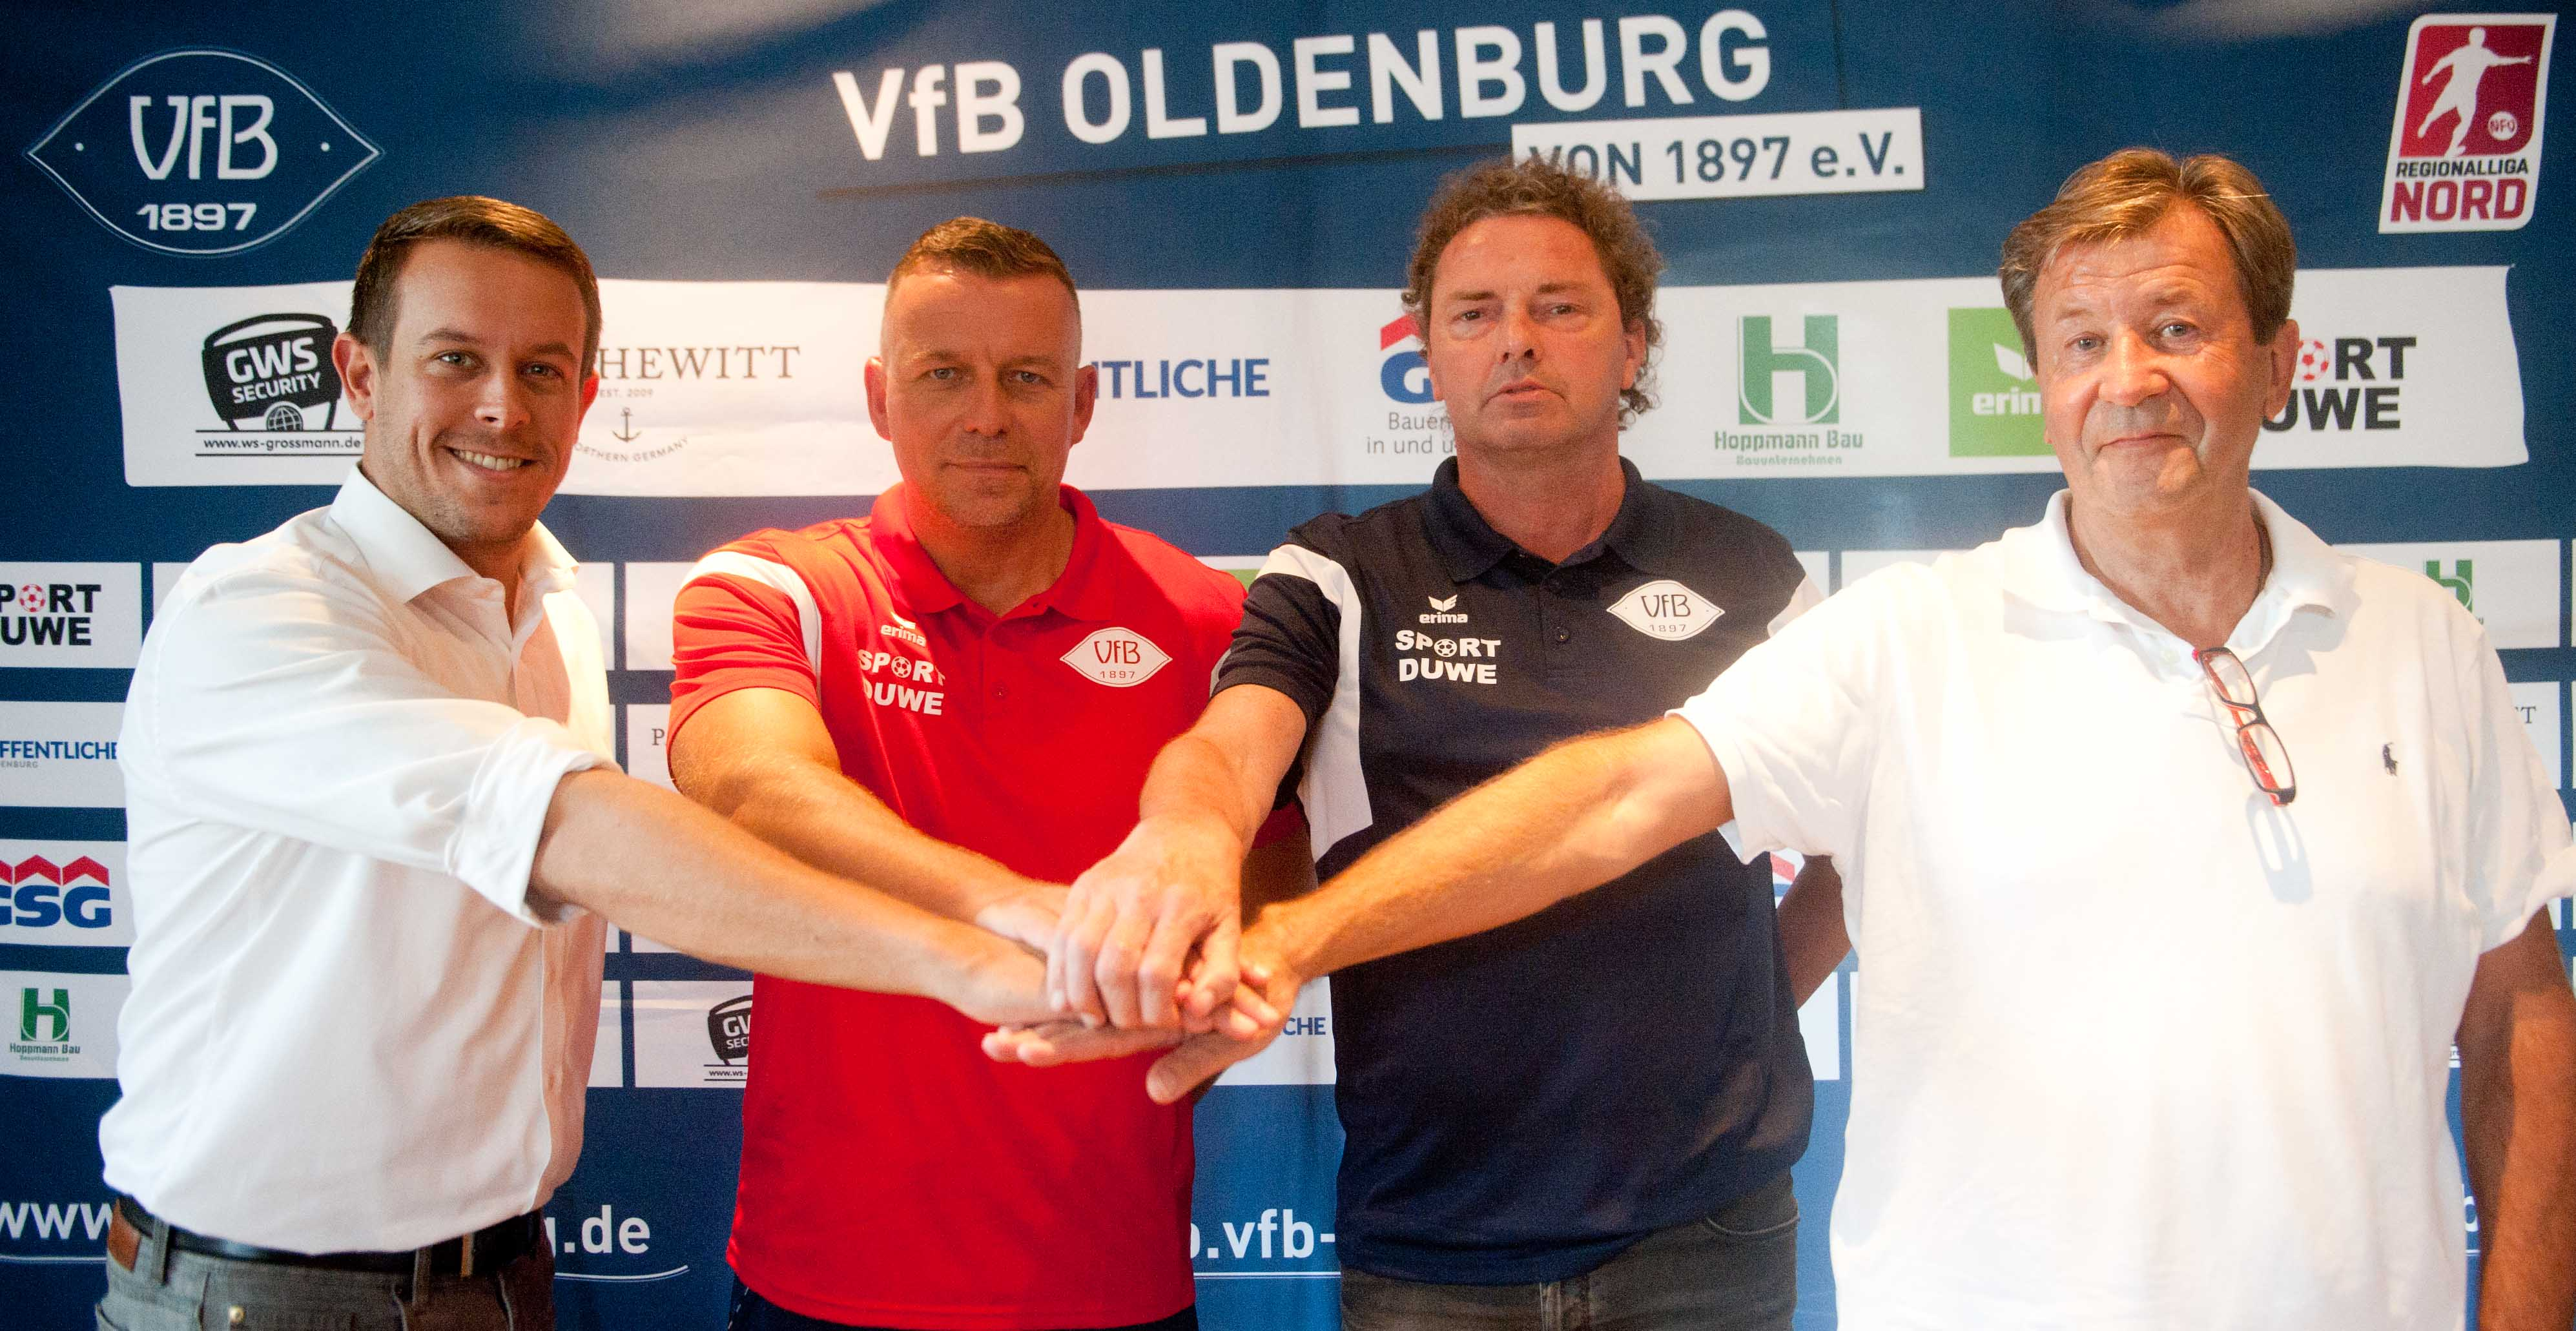 https://vfb-oldenburg.de/wp-content/uploads/VfB_Ehlers_Online.jpg